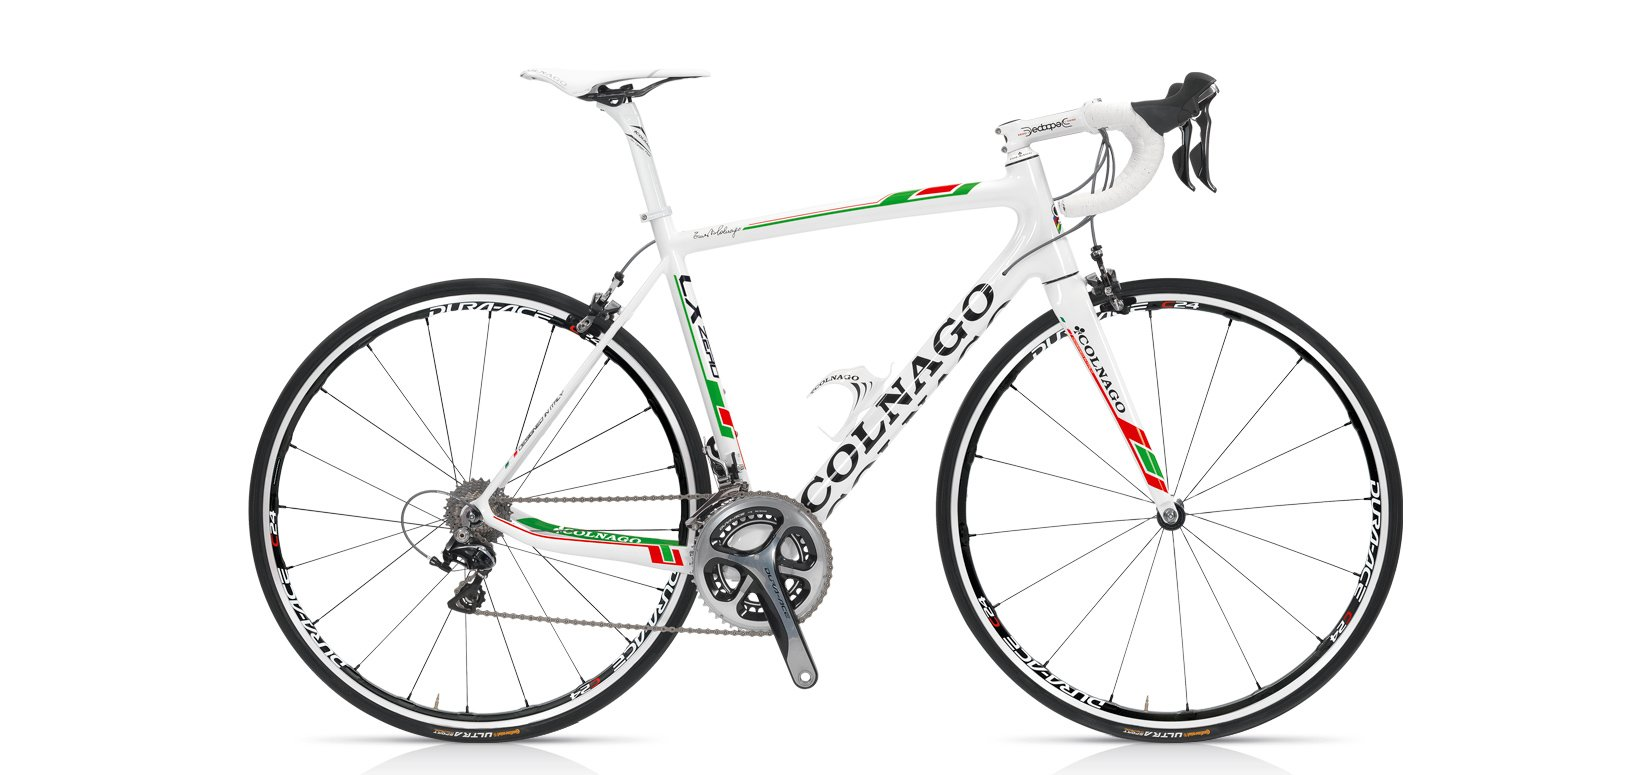 The new Colnago CX Zero